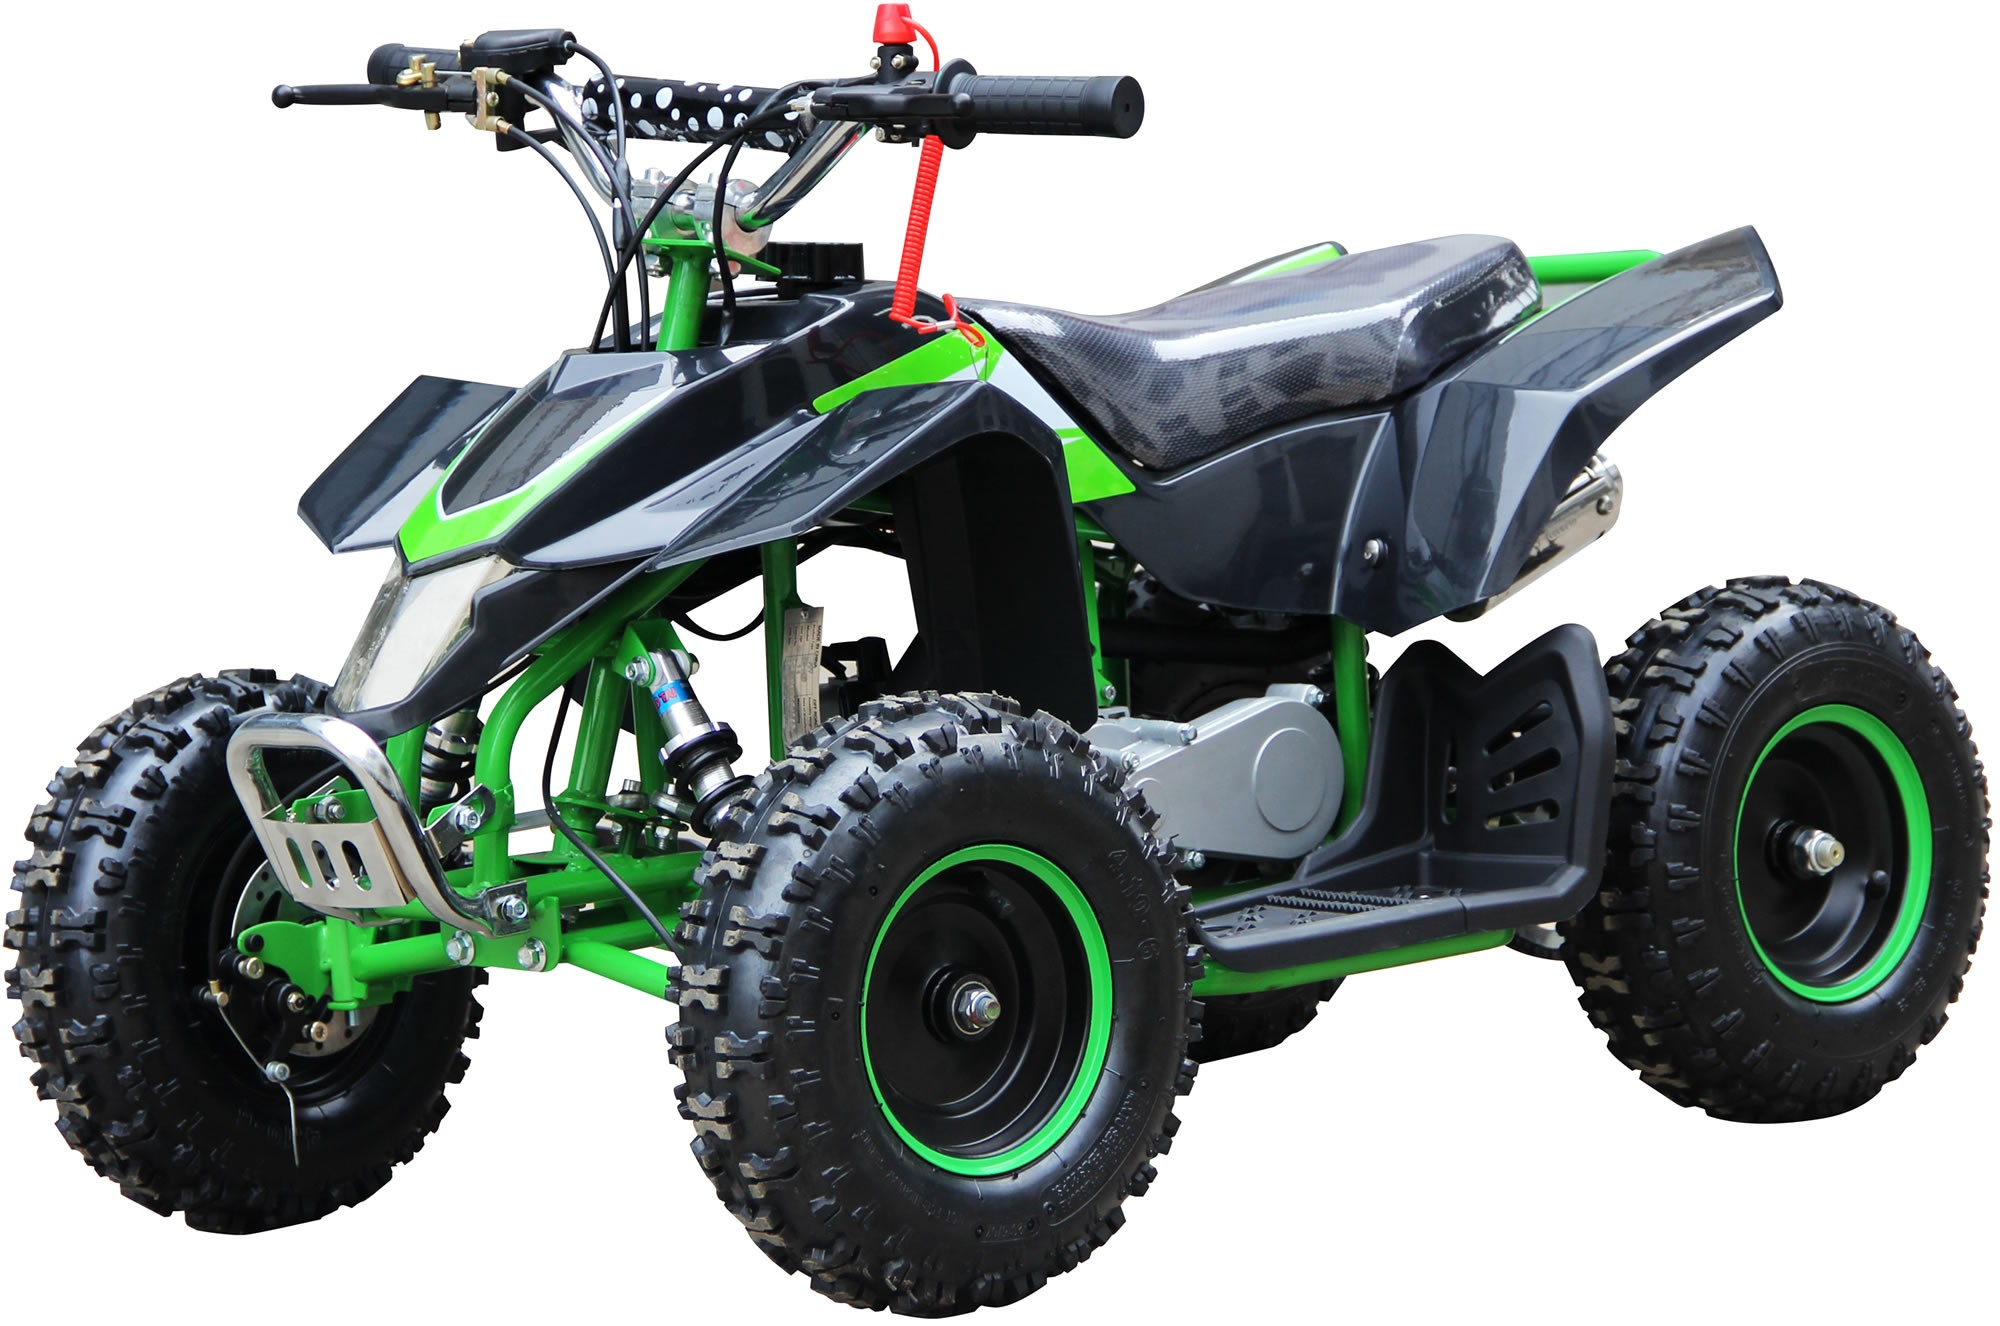 49cc Z20 Kids Petrol ATV Quad Bike - Green